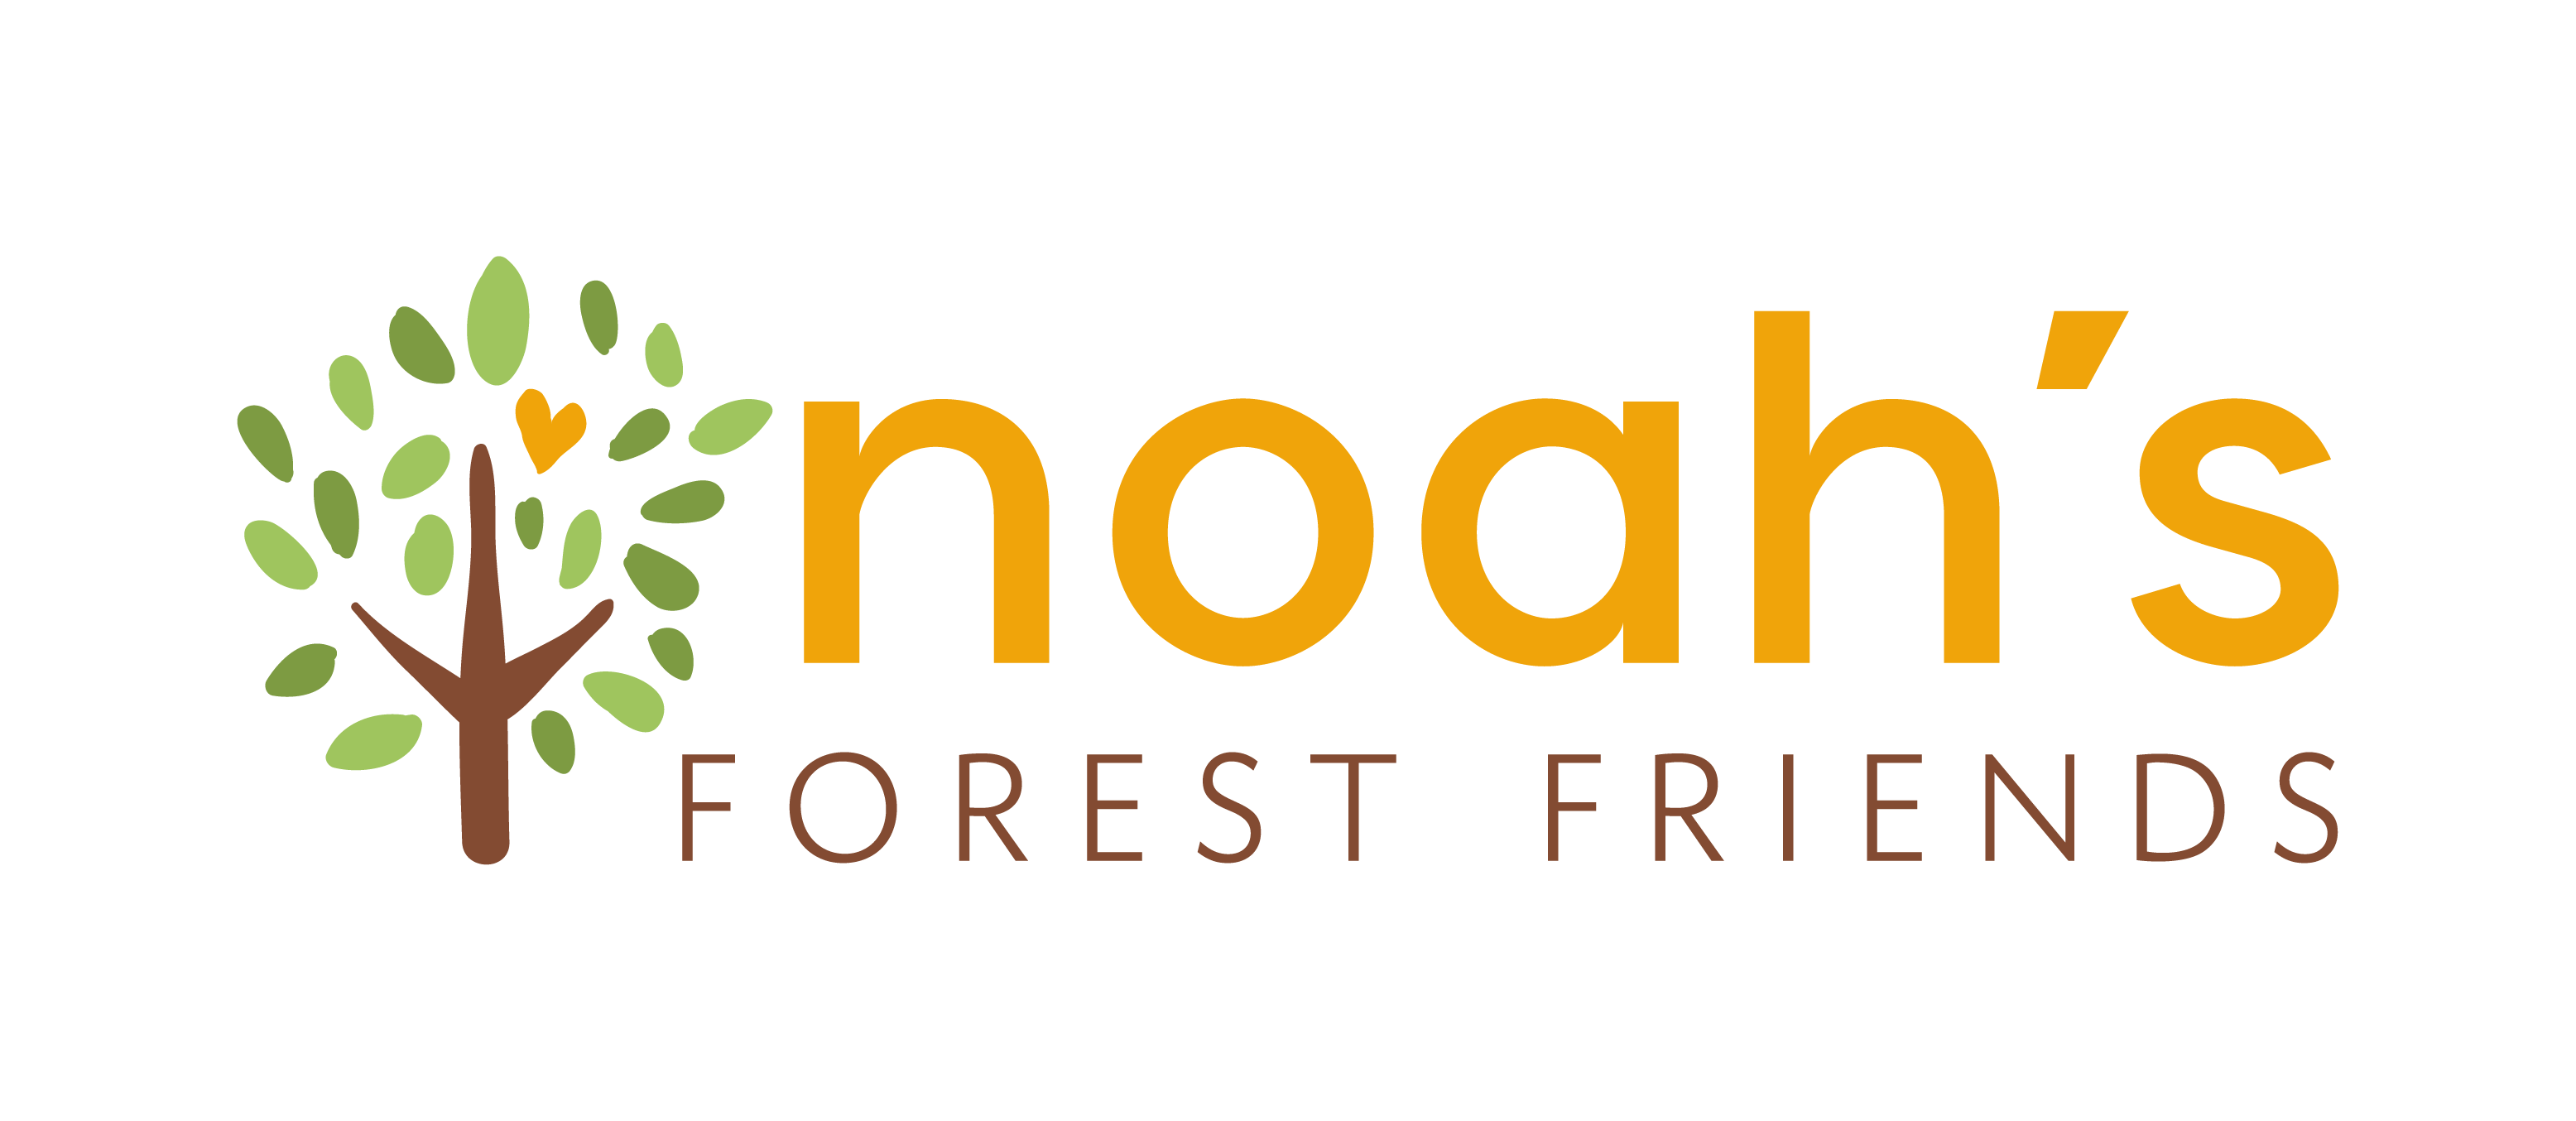 Noah's Forest Friends